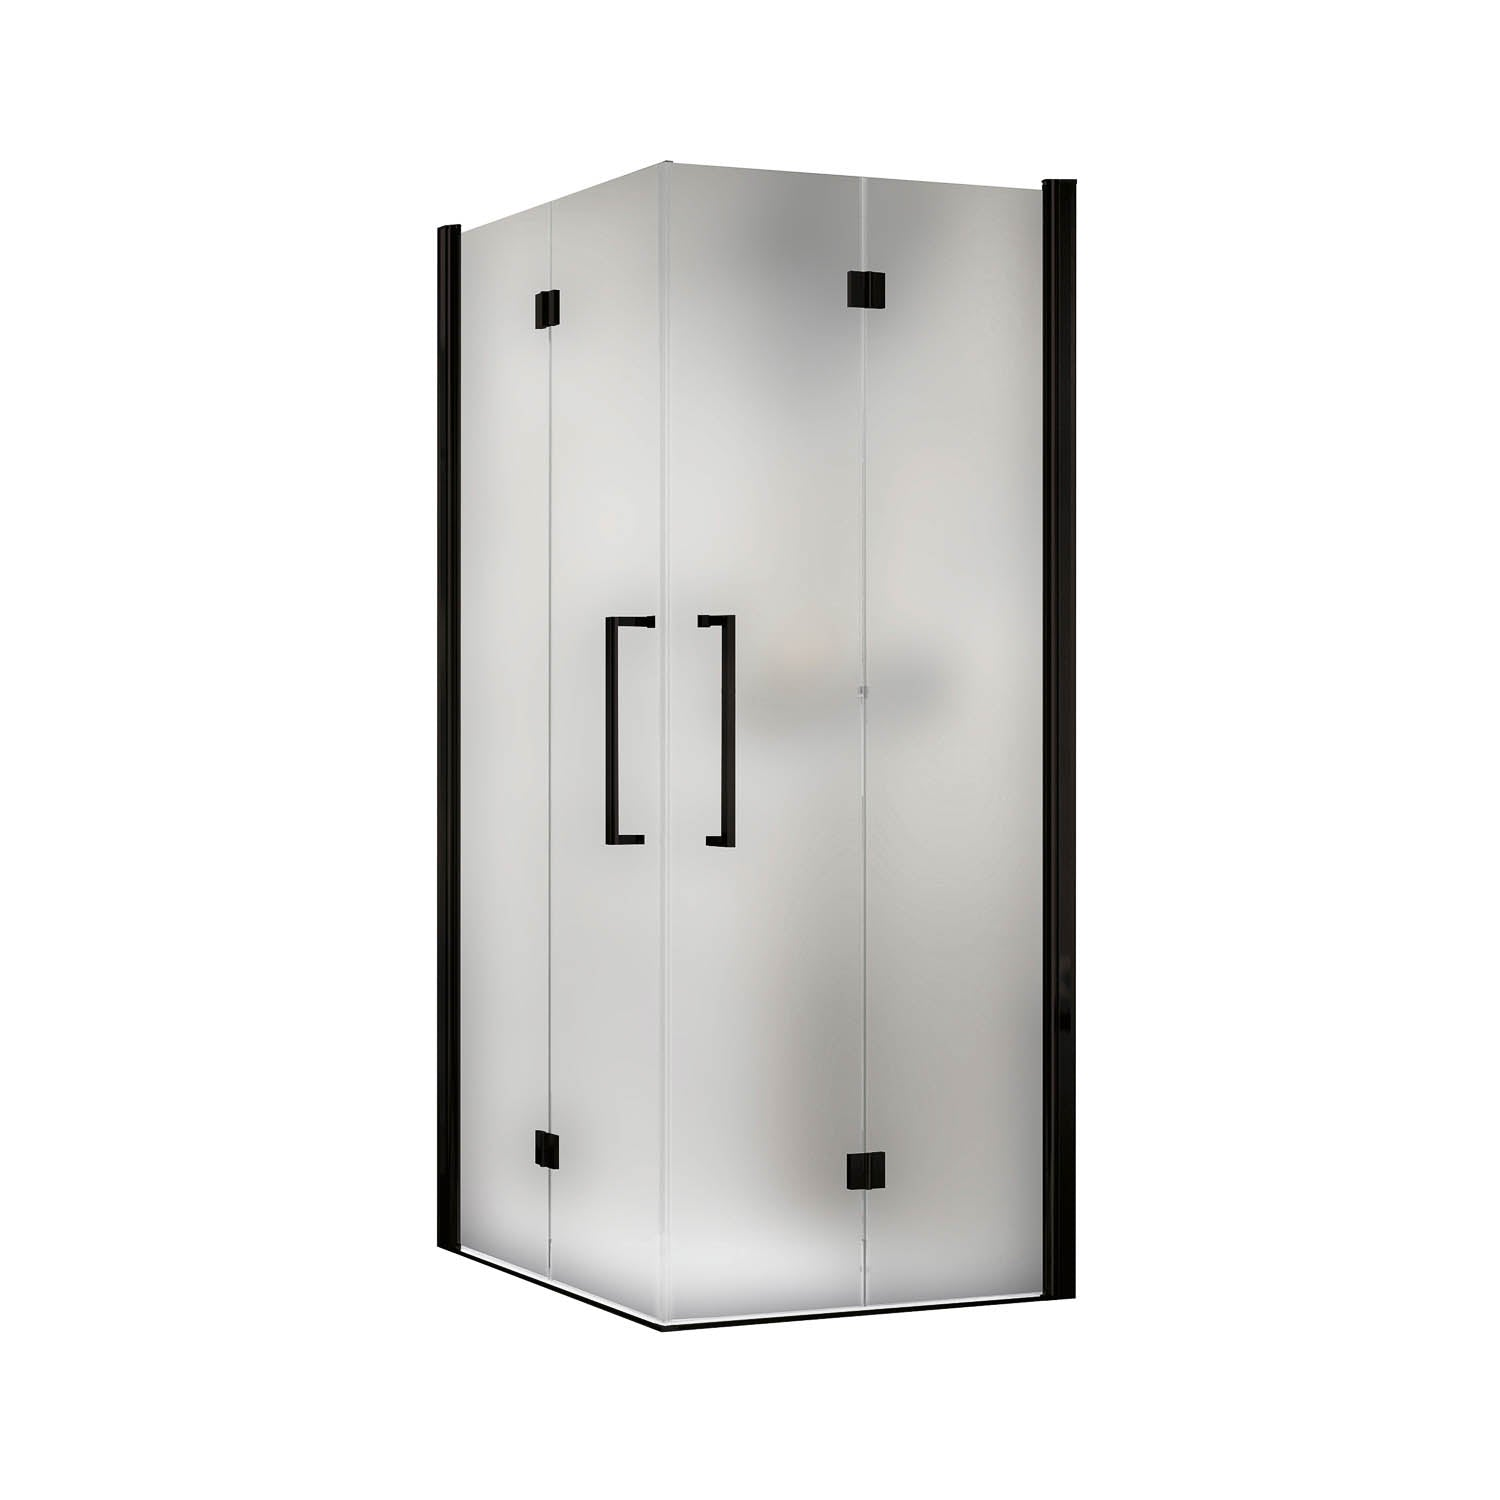 1050-1070mm Bliss Bi-folding Screen Frosted Glass with a matt black finish on a white background